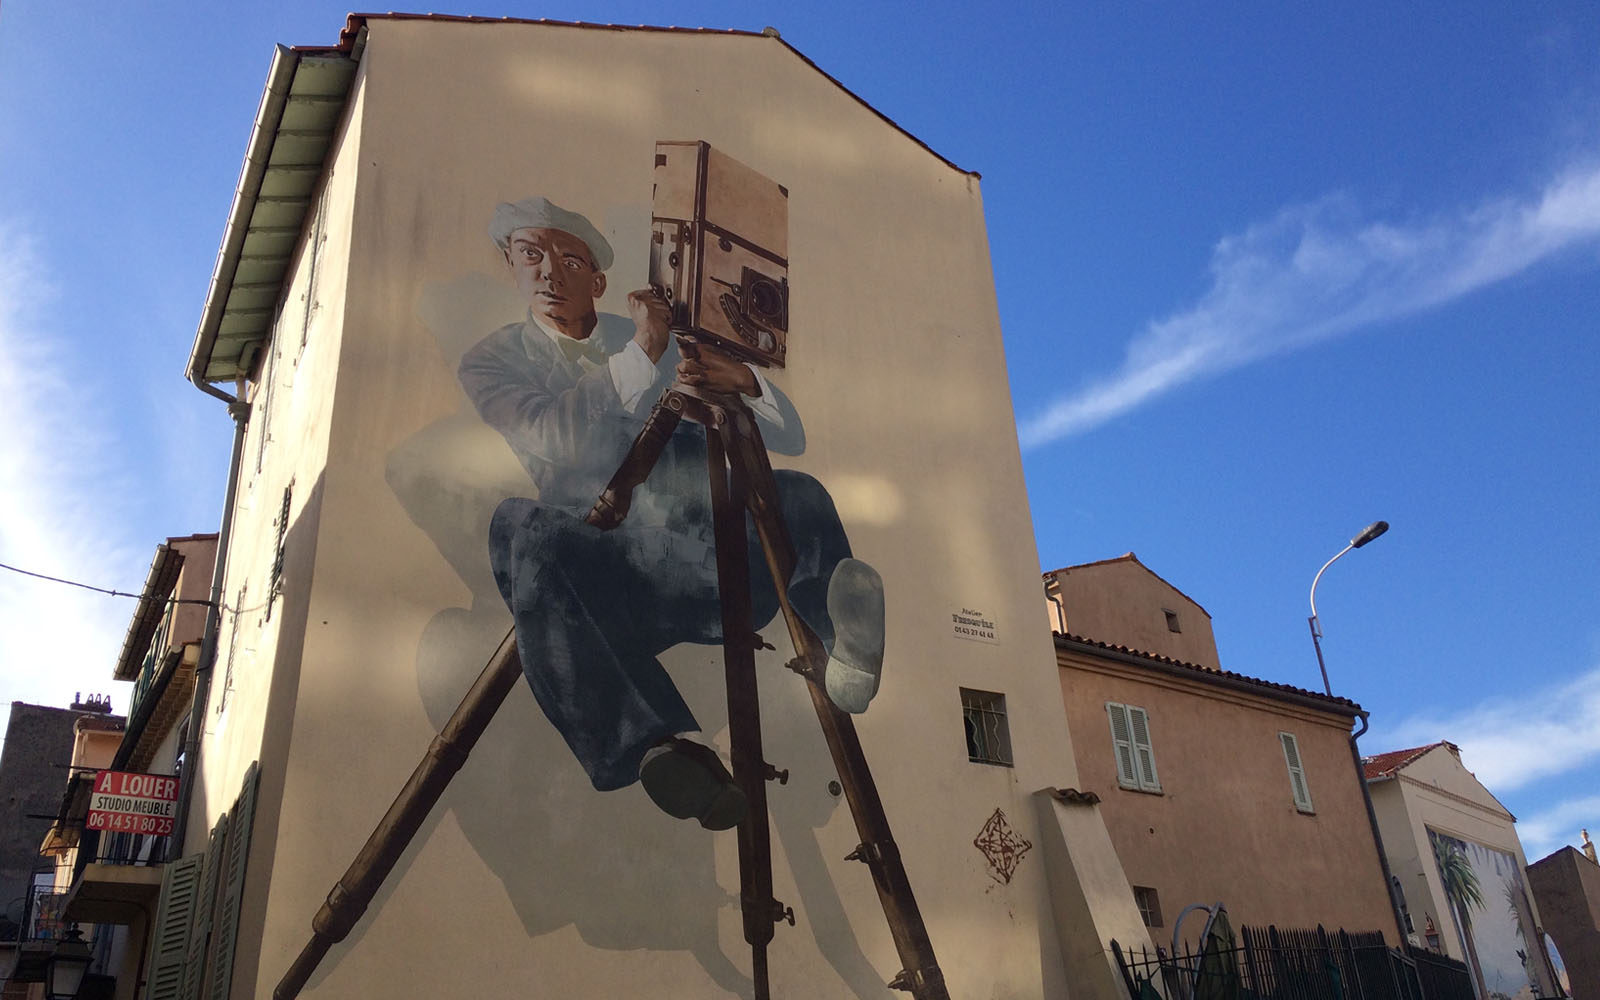 Il murale in omaggio a Buster Keaton, in boulevard Victor Tuby 29.